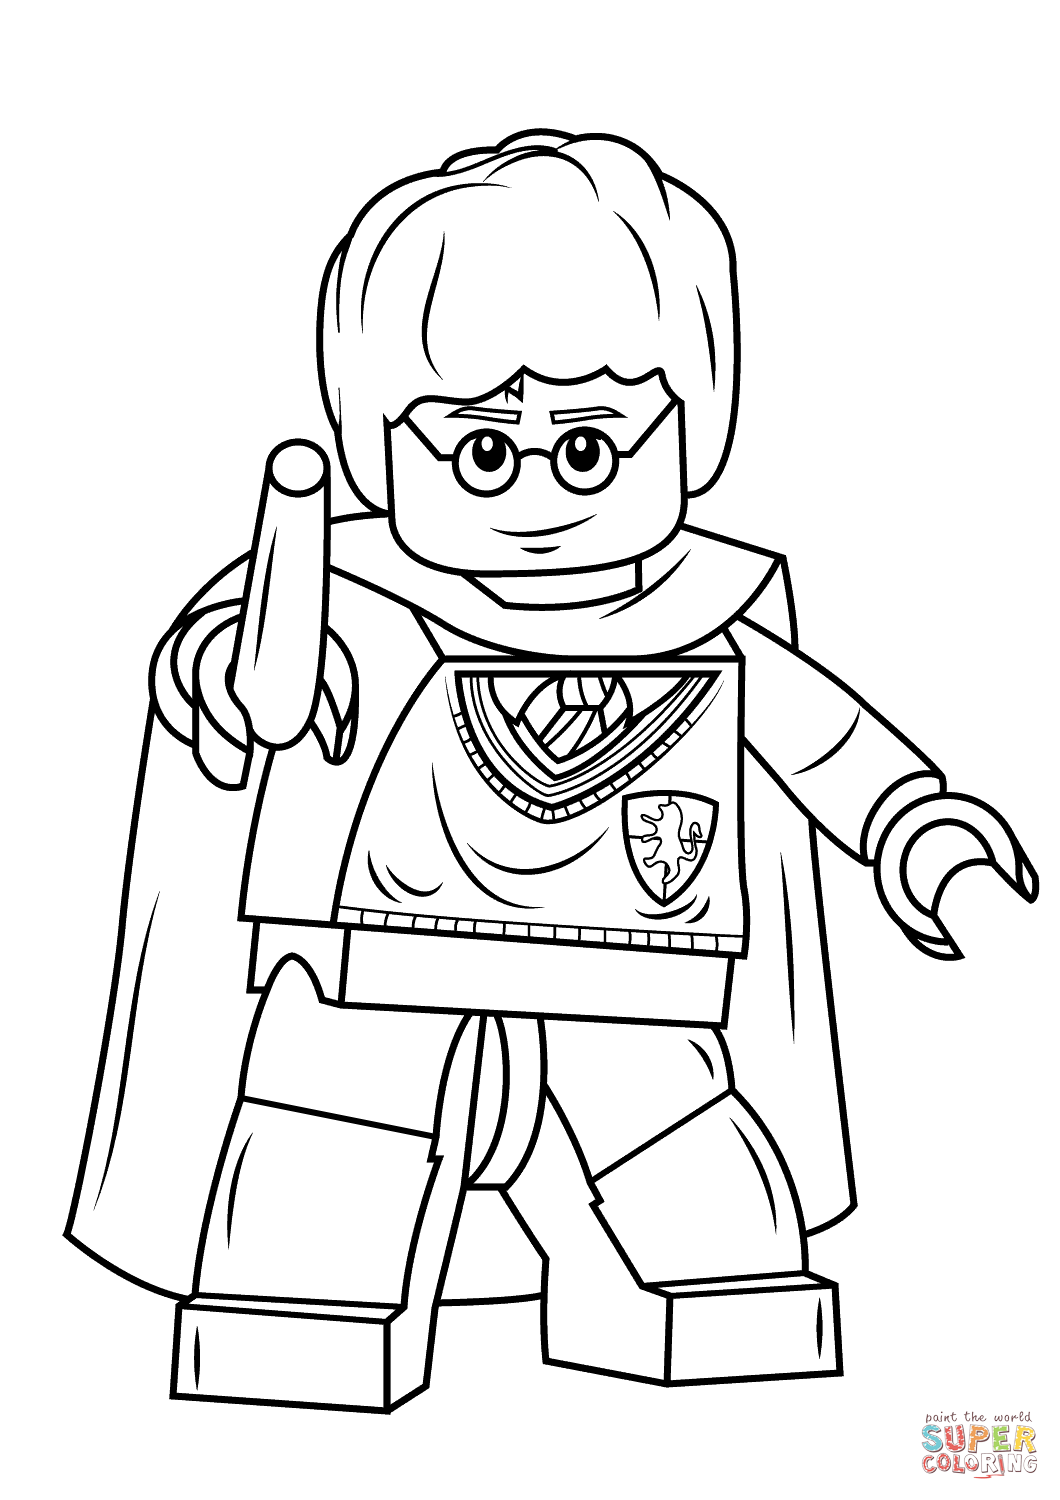 Lego harry potter with wand coloring page free printable